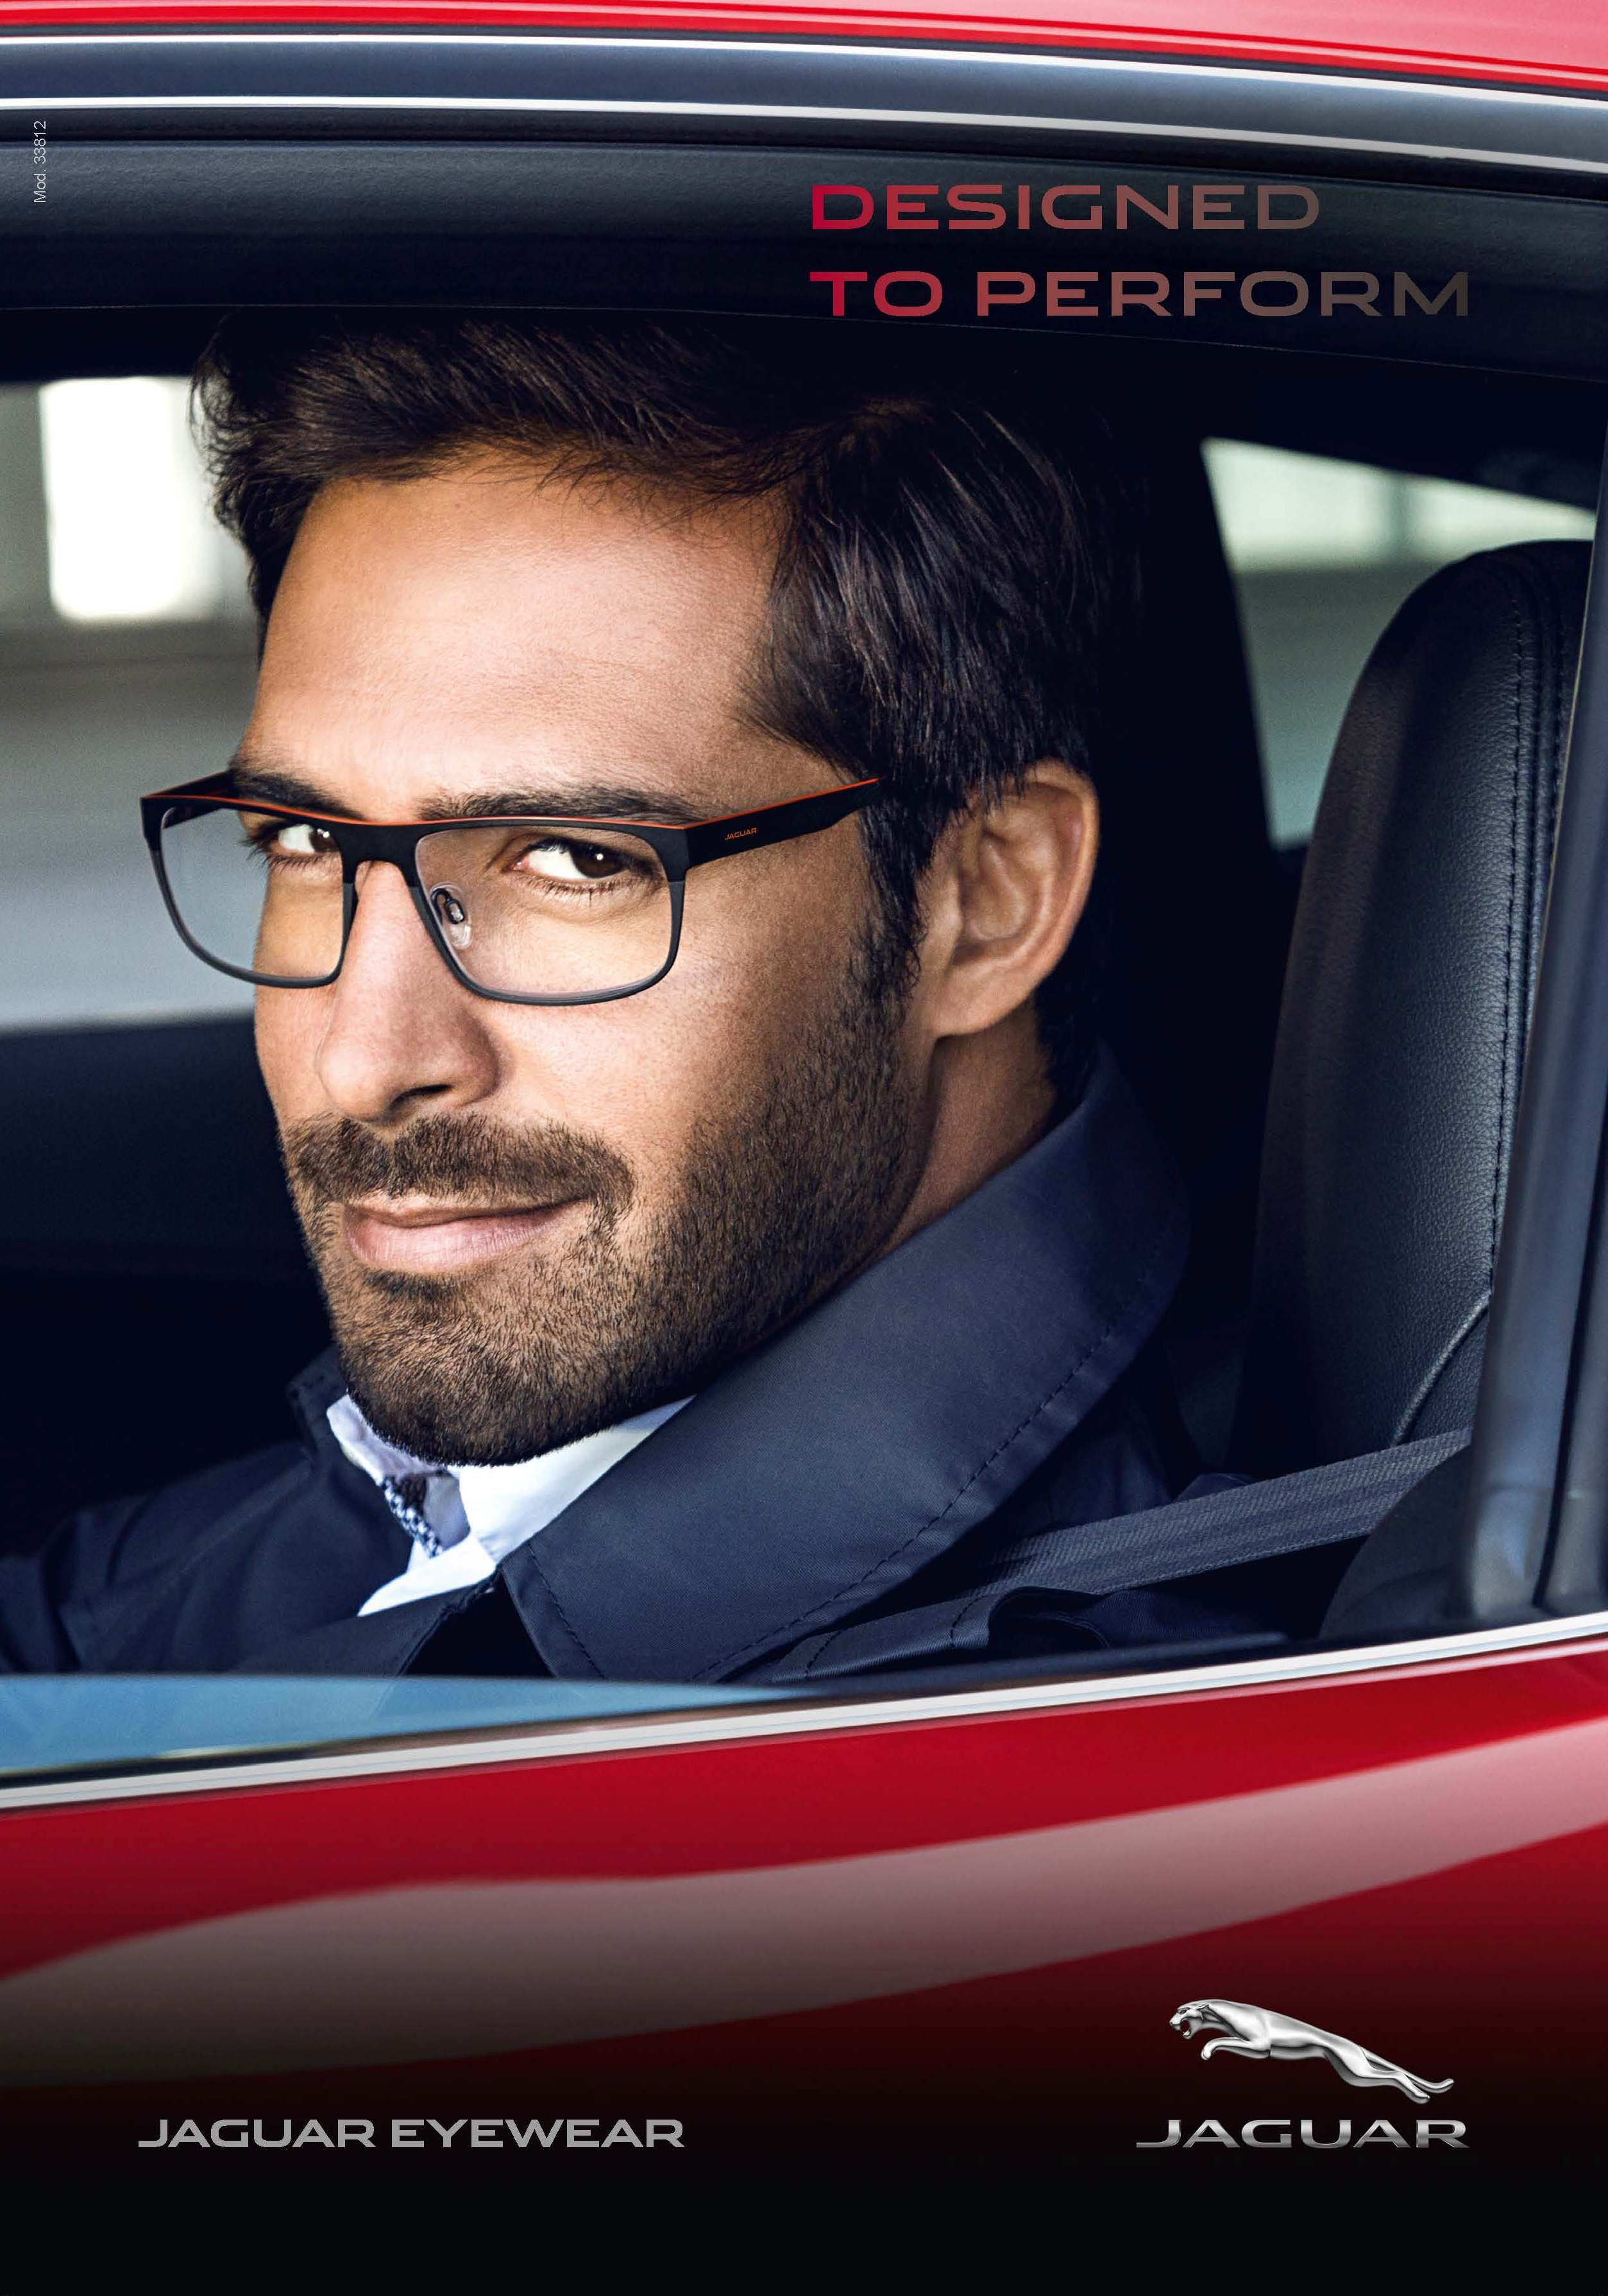 buffel col products spectacles point eyewear care braun mil frame eye prod detail product jaguar